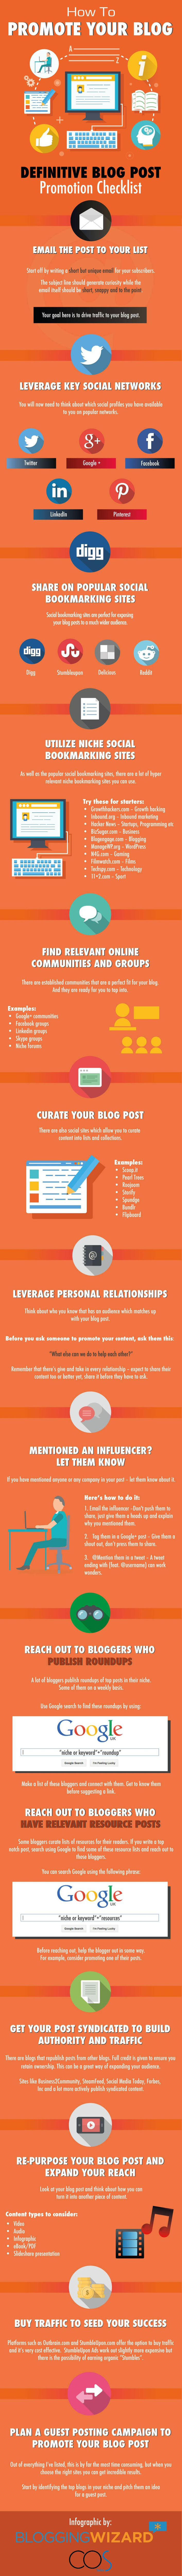 How To Promote Your Next Blog - infographic